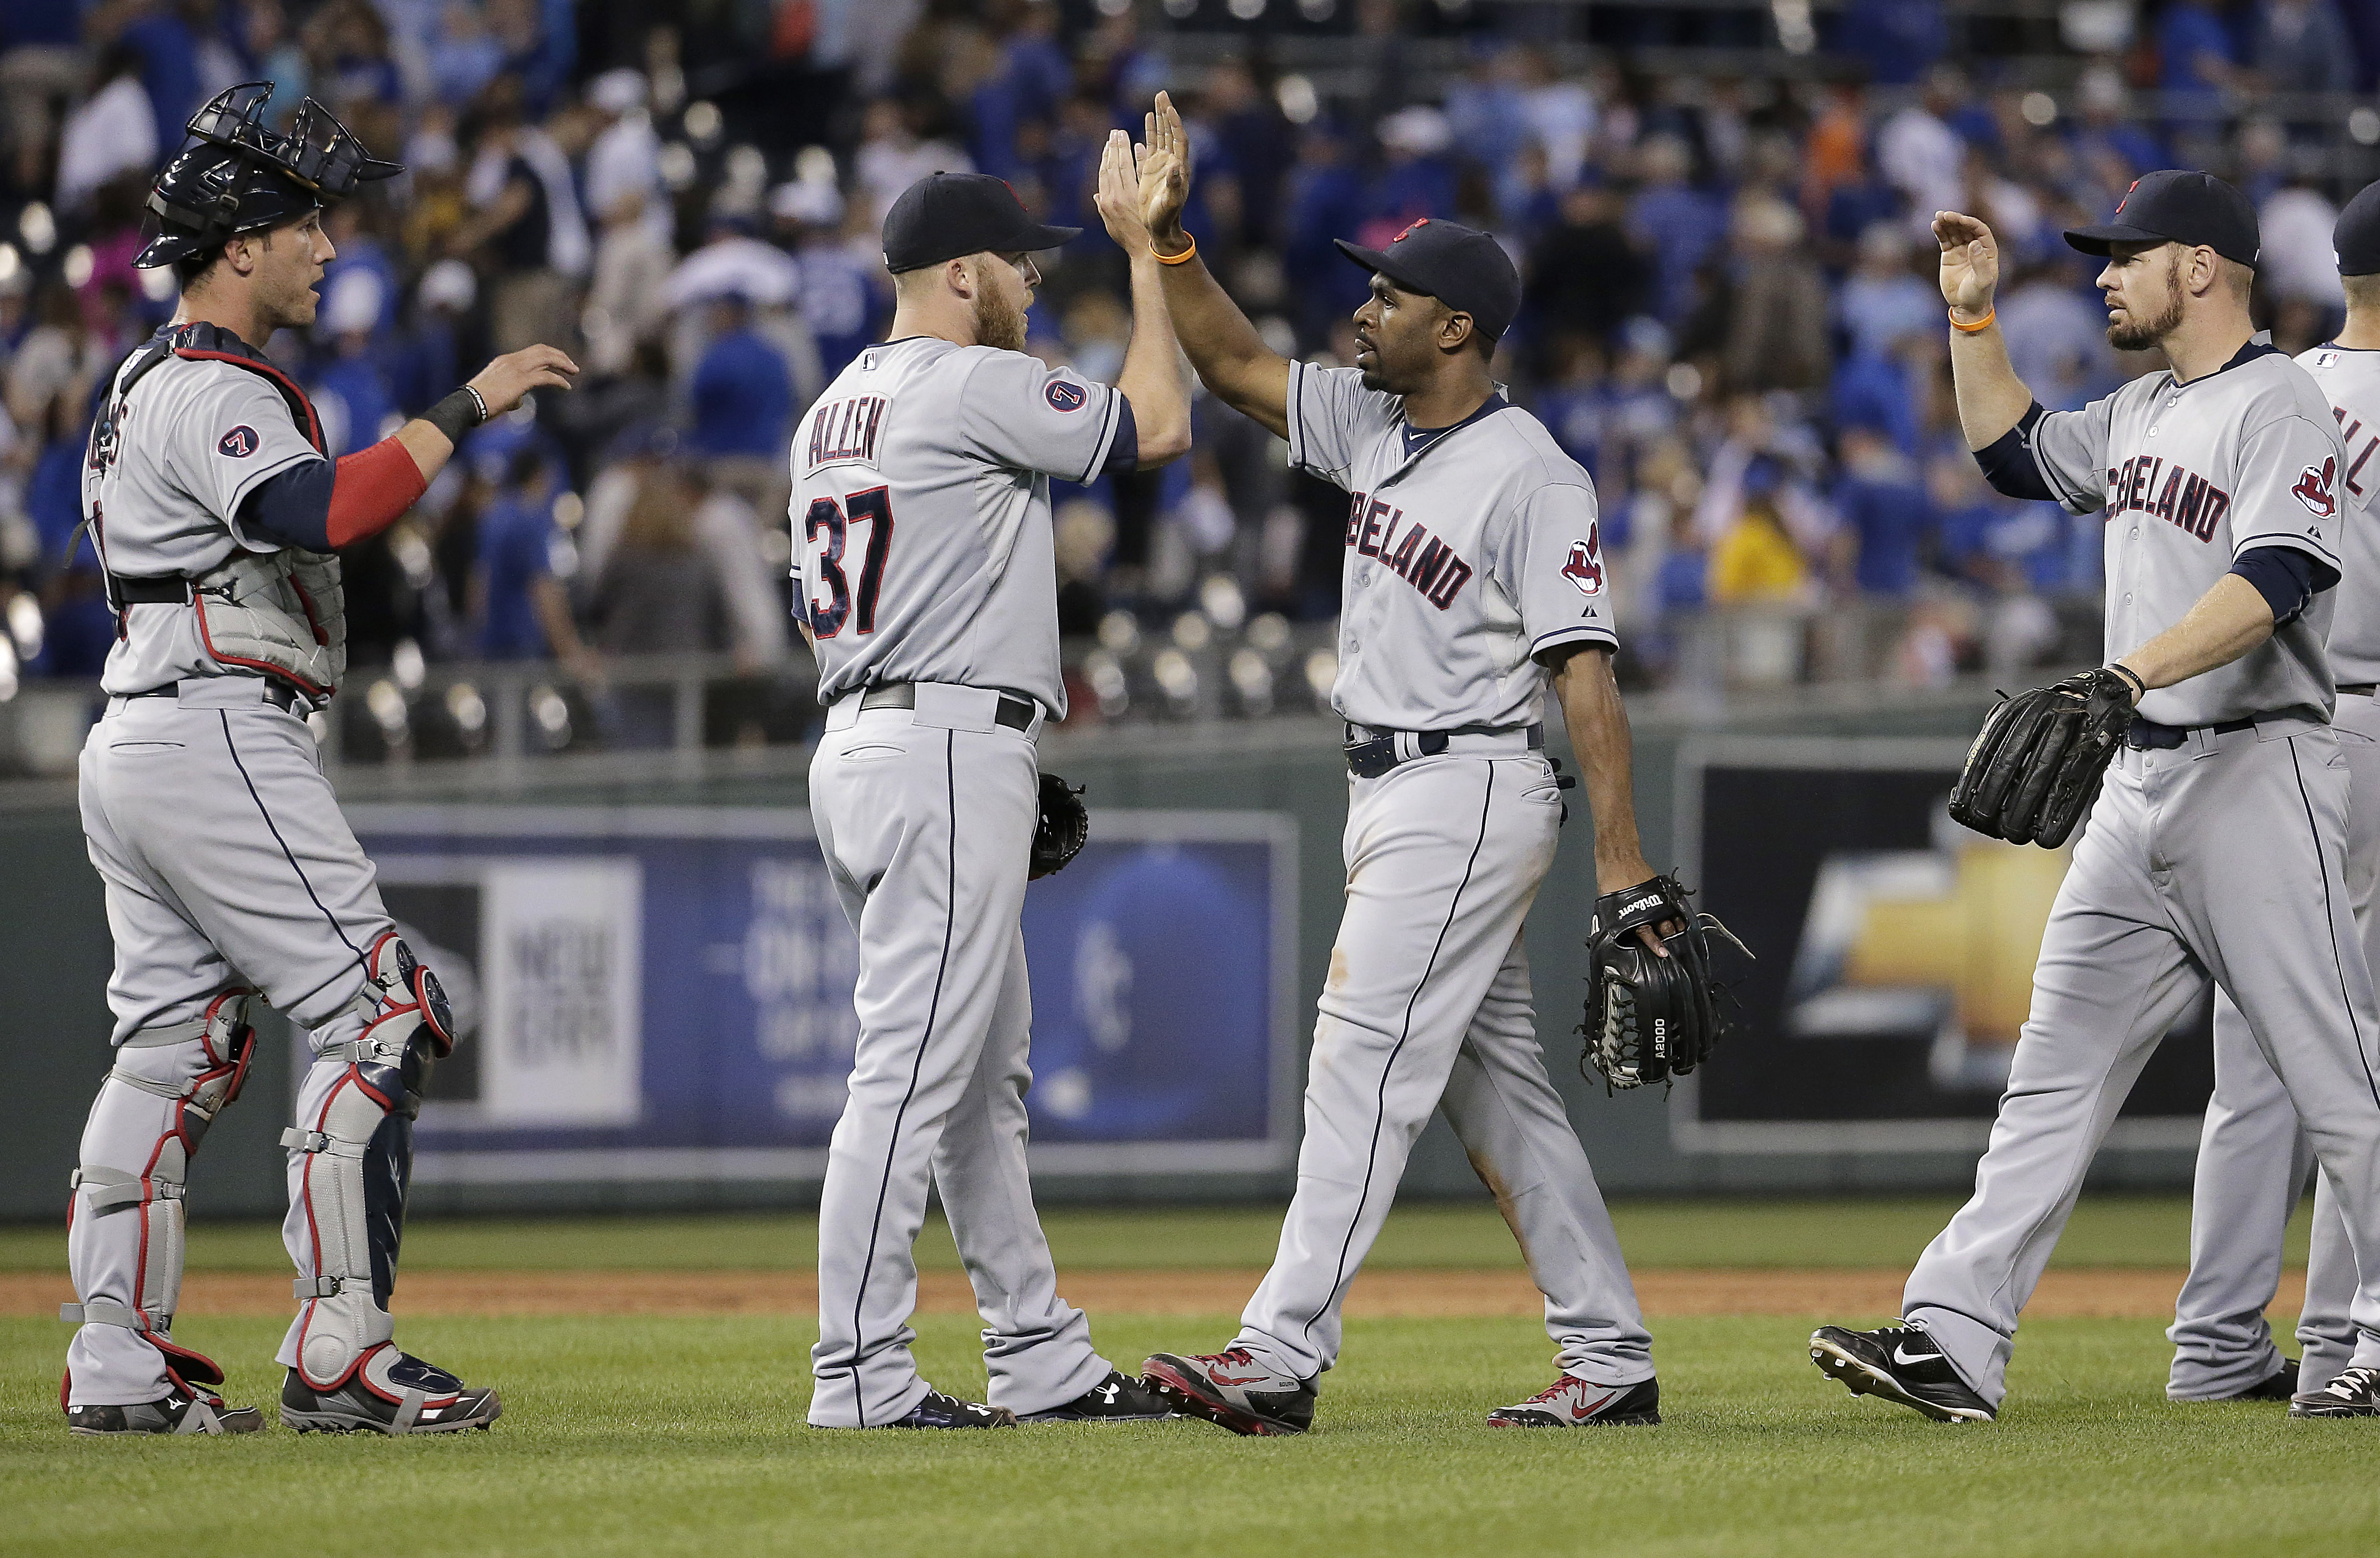 Cleveland Indians celebrate after their baseball game against the Kansas City Royals on Tuesday, June 2, 2015, in Kansas City, Mo. The Indians won 2-1. (AP Photo/Charlie Riedel)